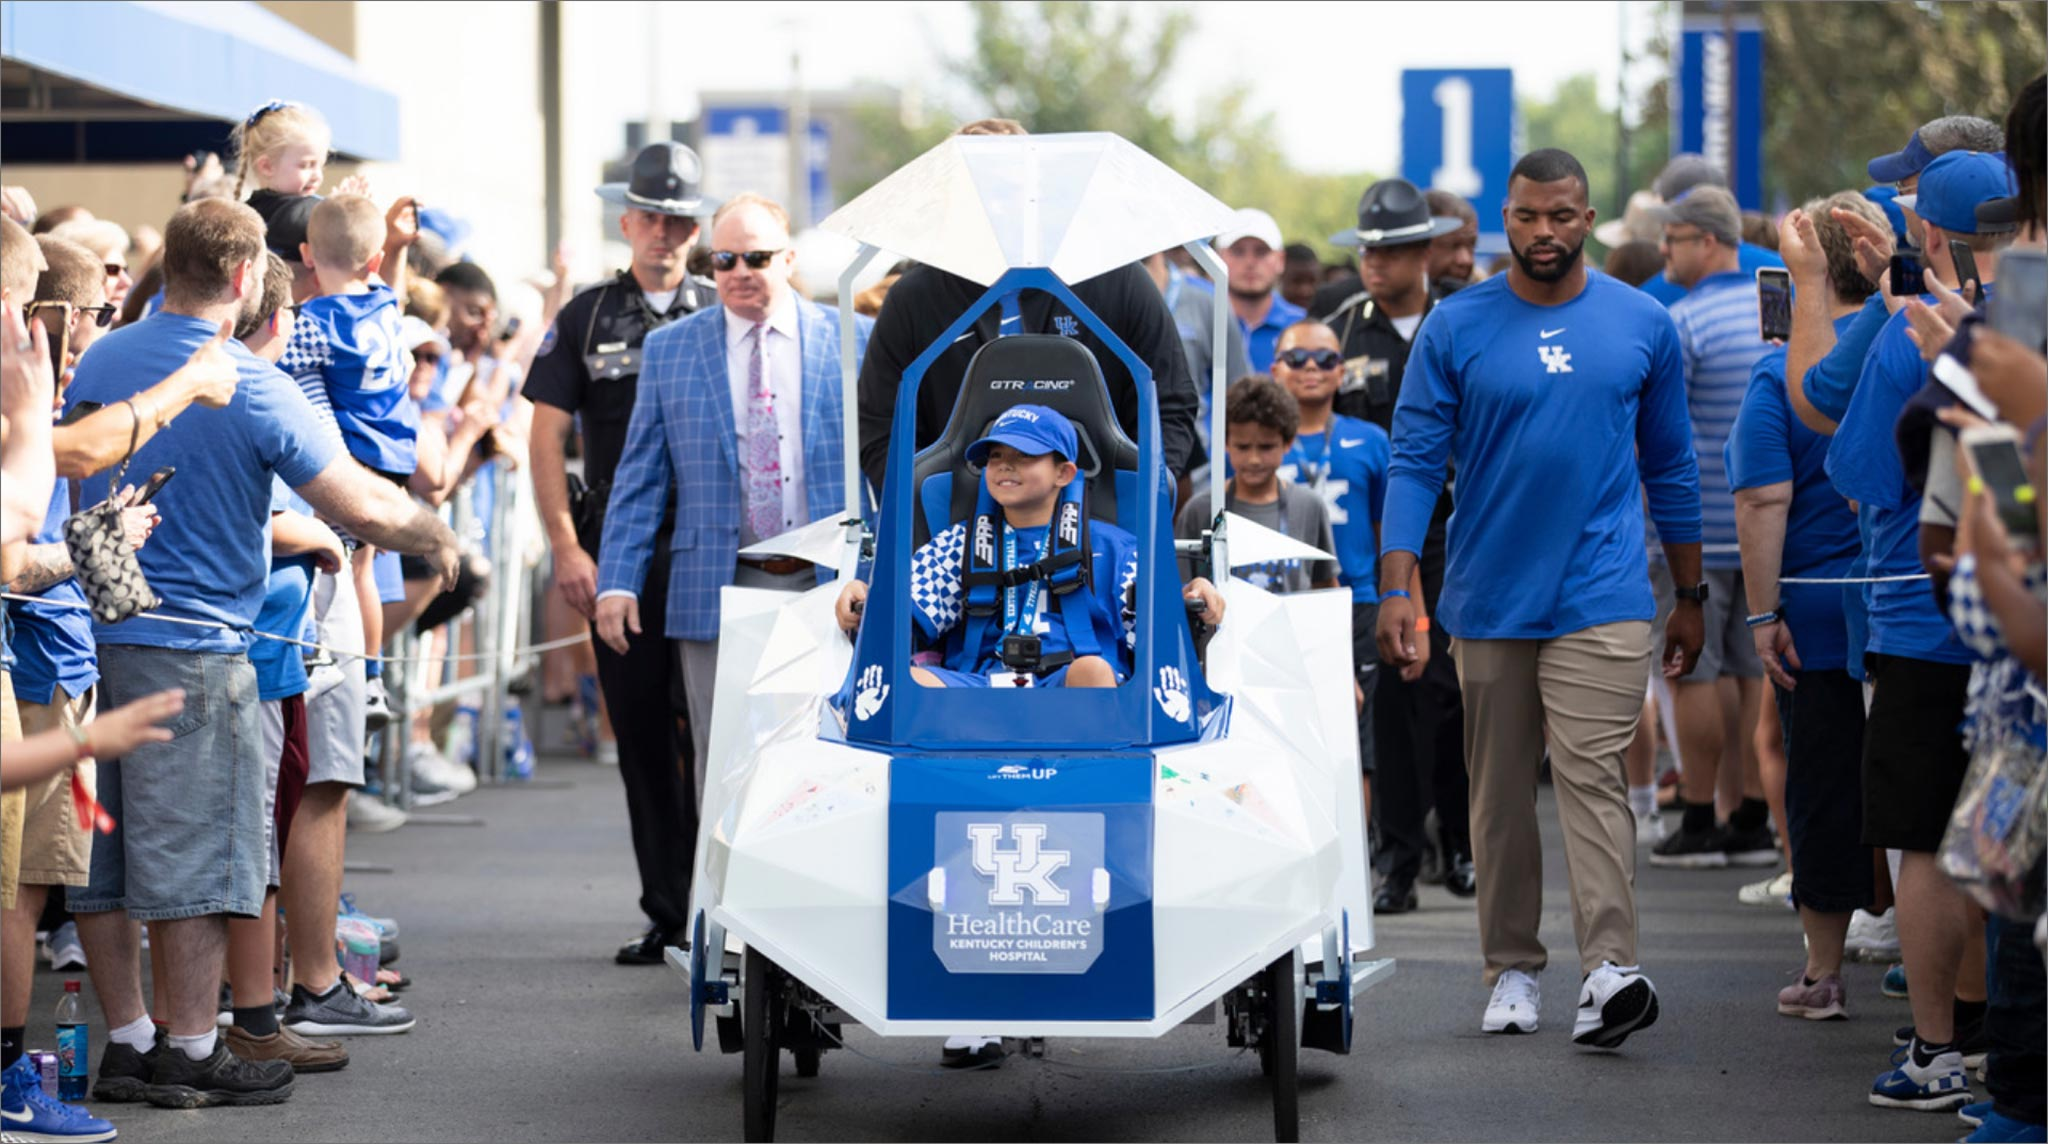 Marco leads the Cat Walk for the UK Football 2019 season opener in a parade of people.